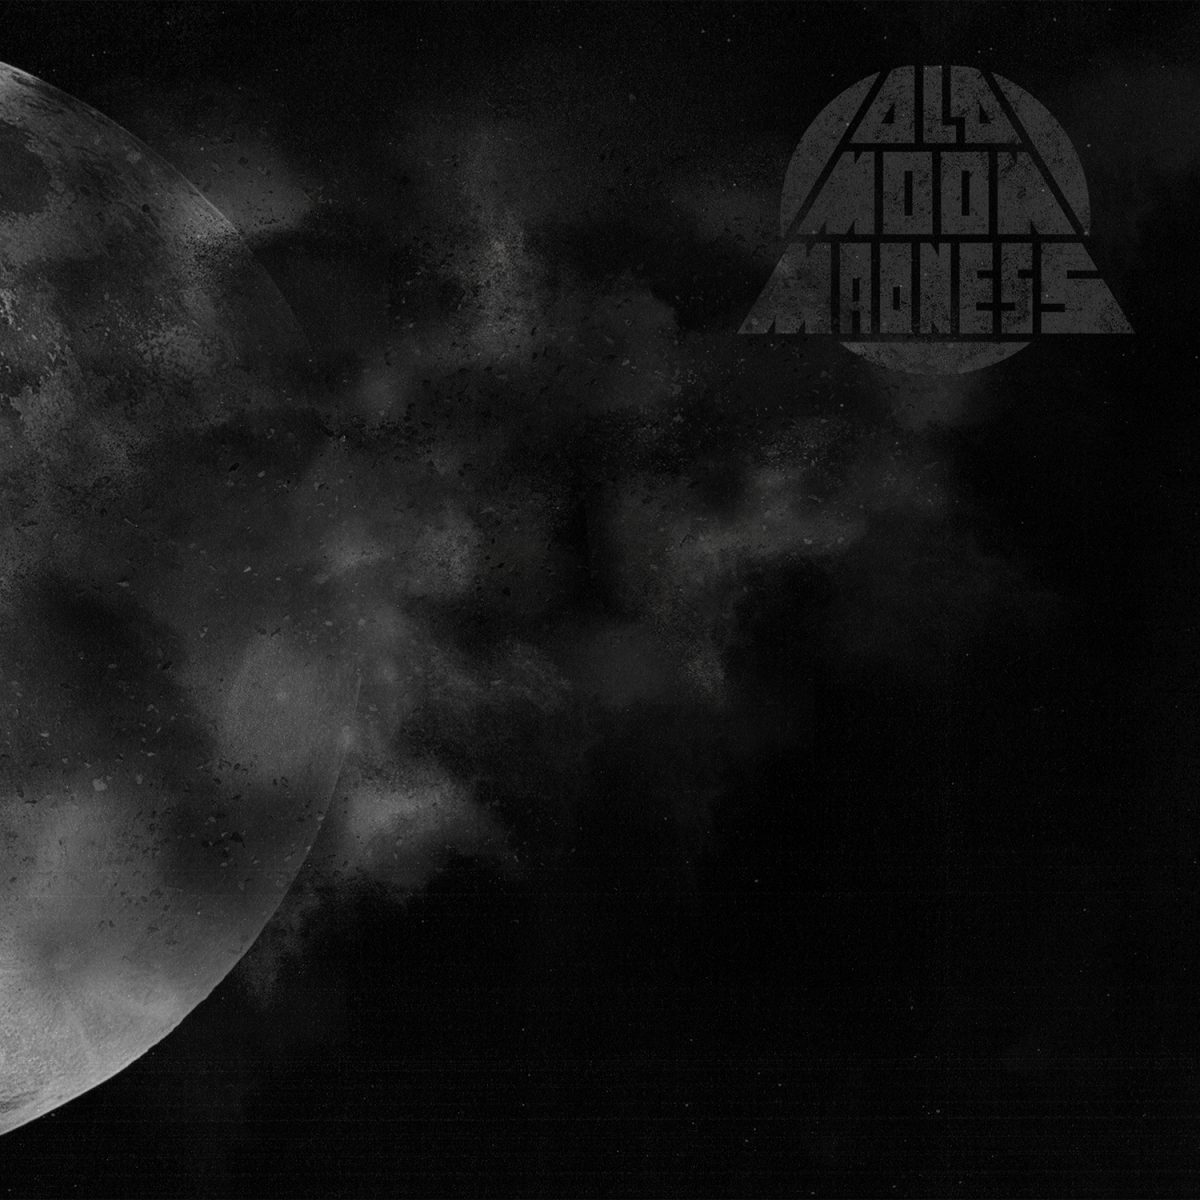 old-moon-madness-traditioneller-hardrock-albumreview